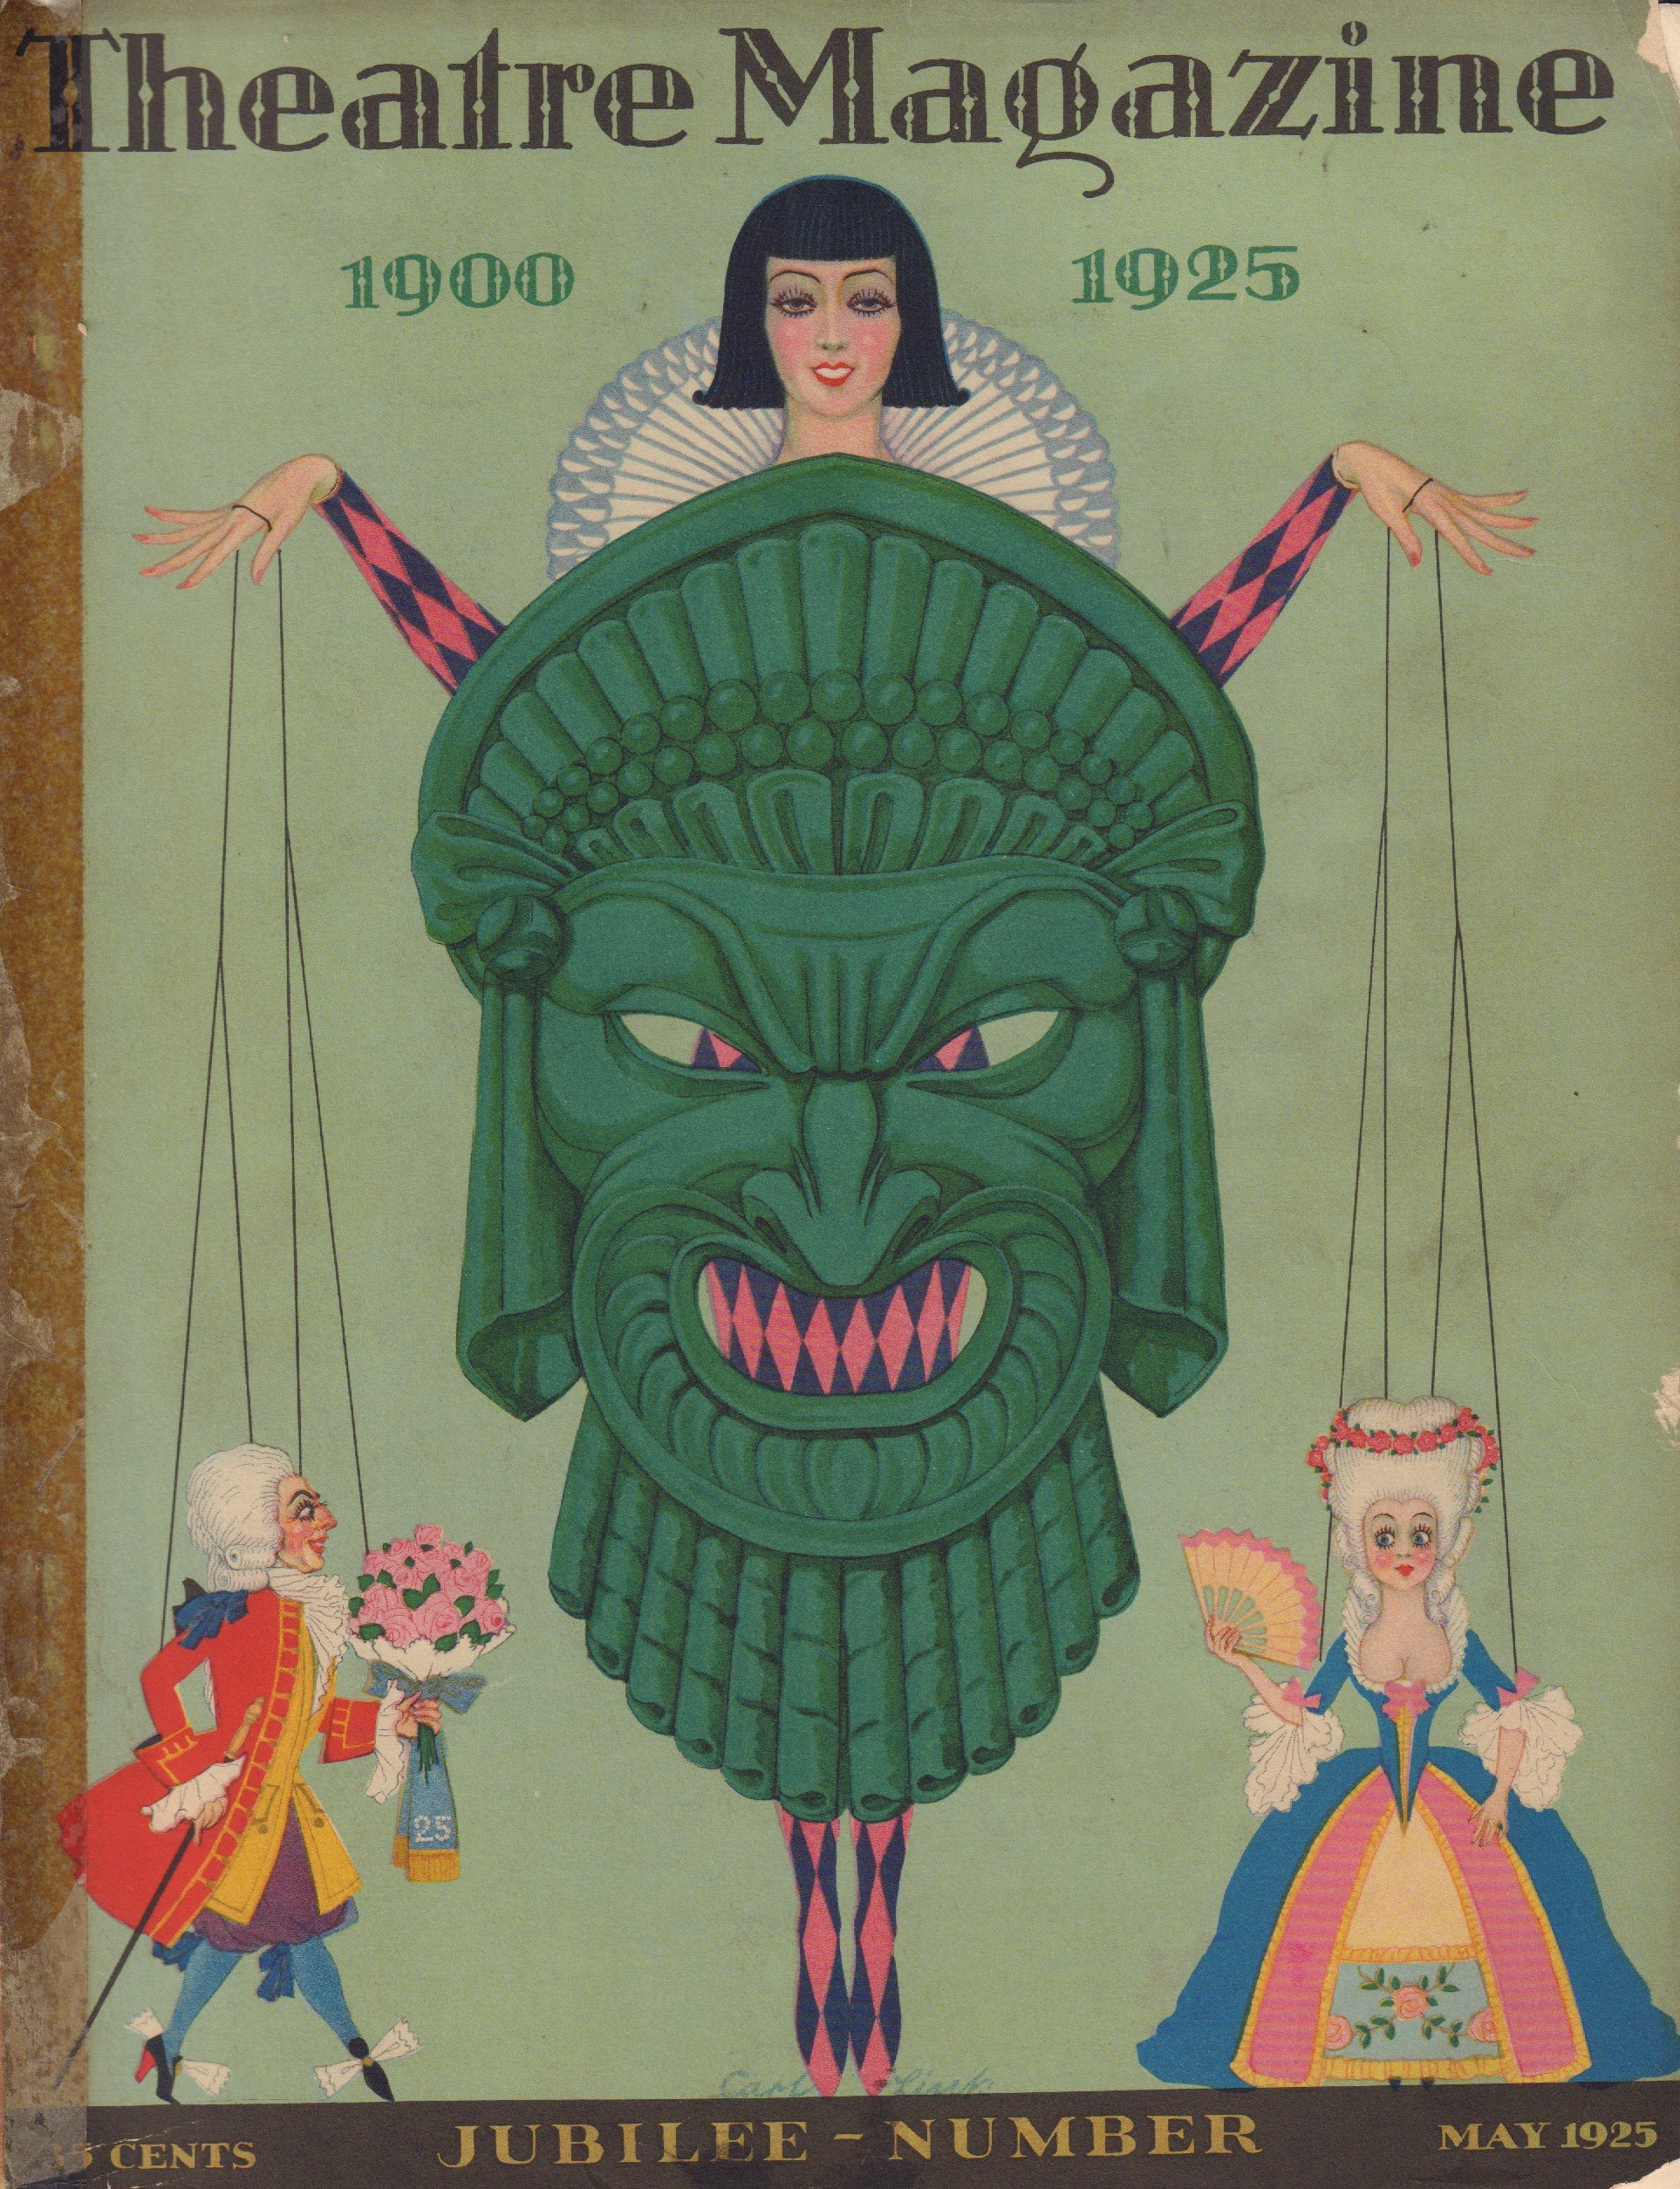 Image for Theatre Magazine. May 1925.